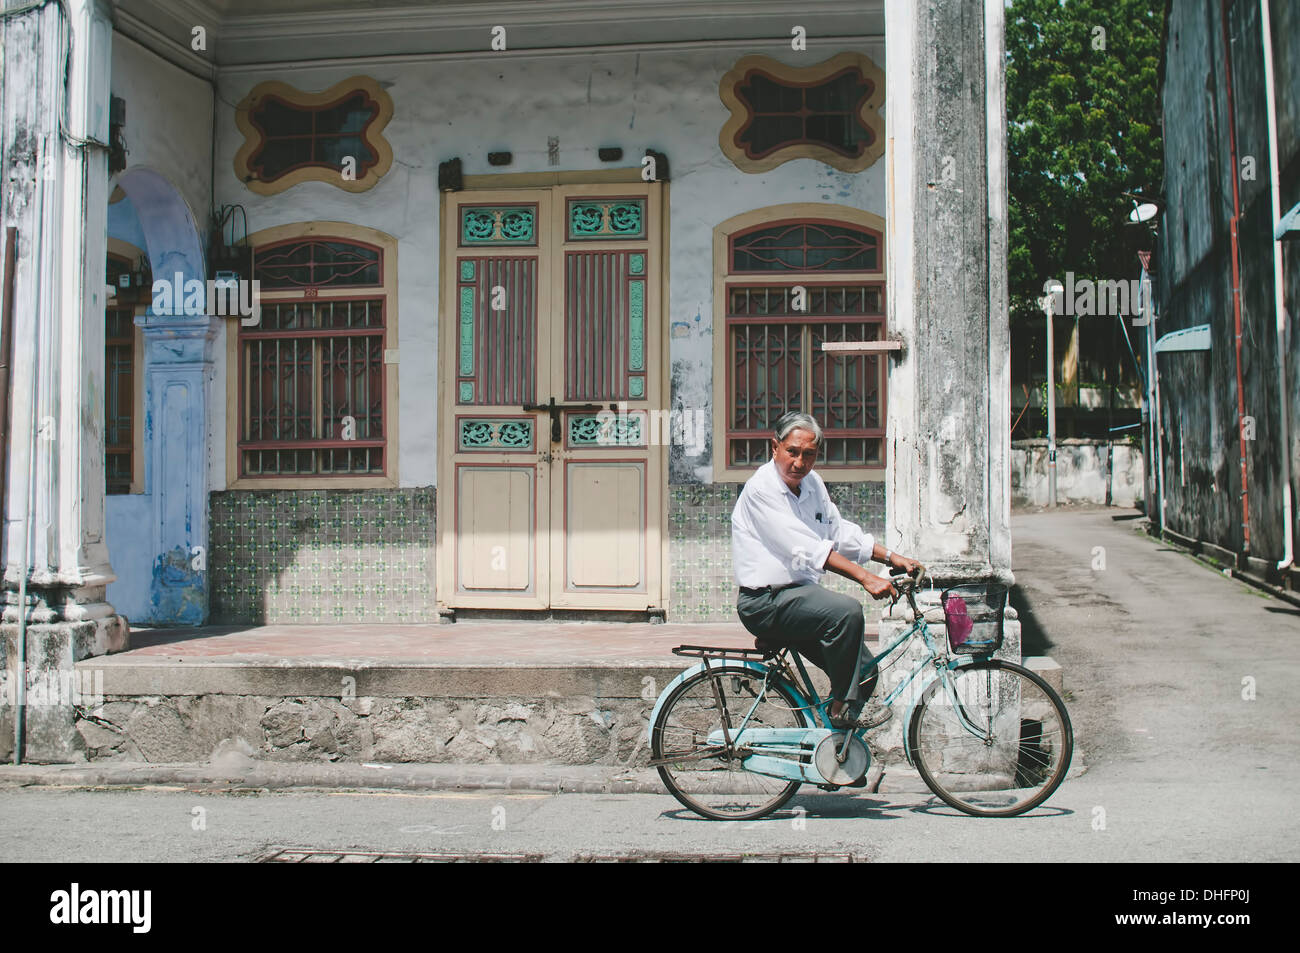 An old man riding a bicycle passing an old shophouse in UNESCO Heritage site, Penang, Malaysia - Stock Image